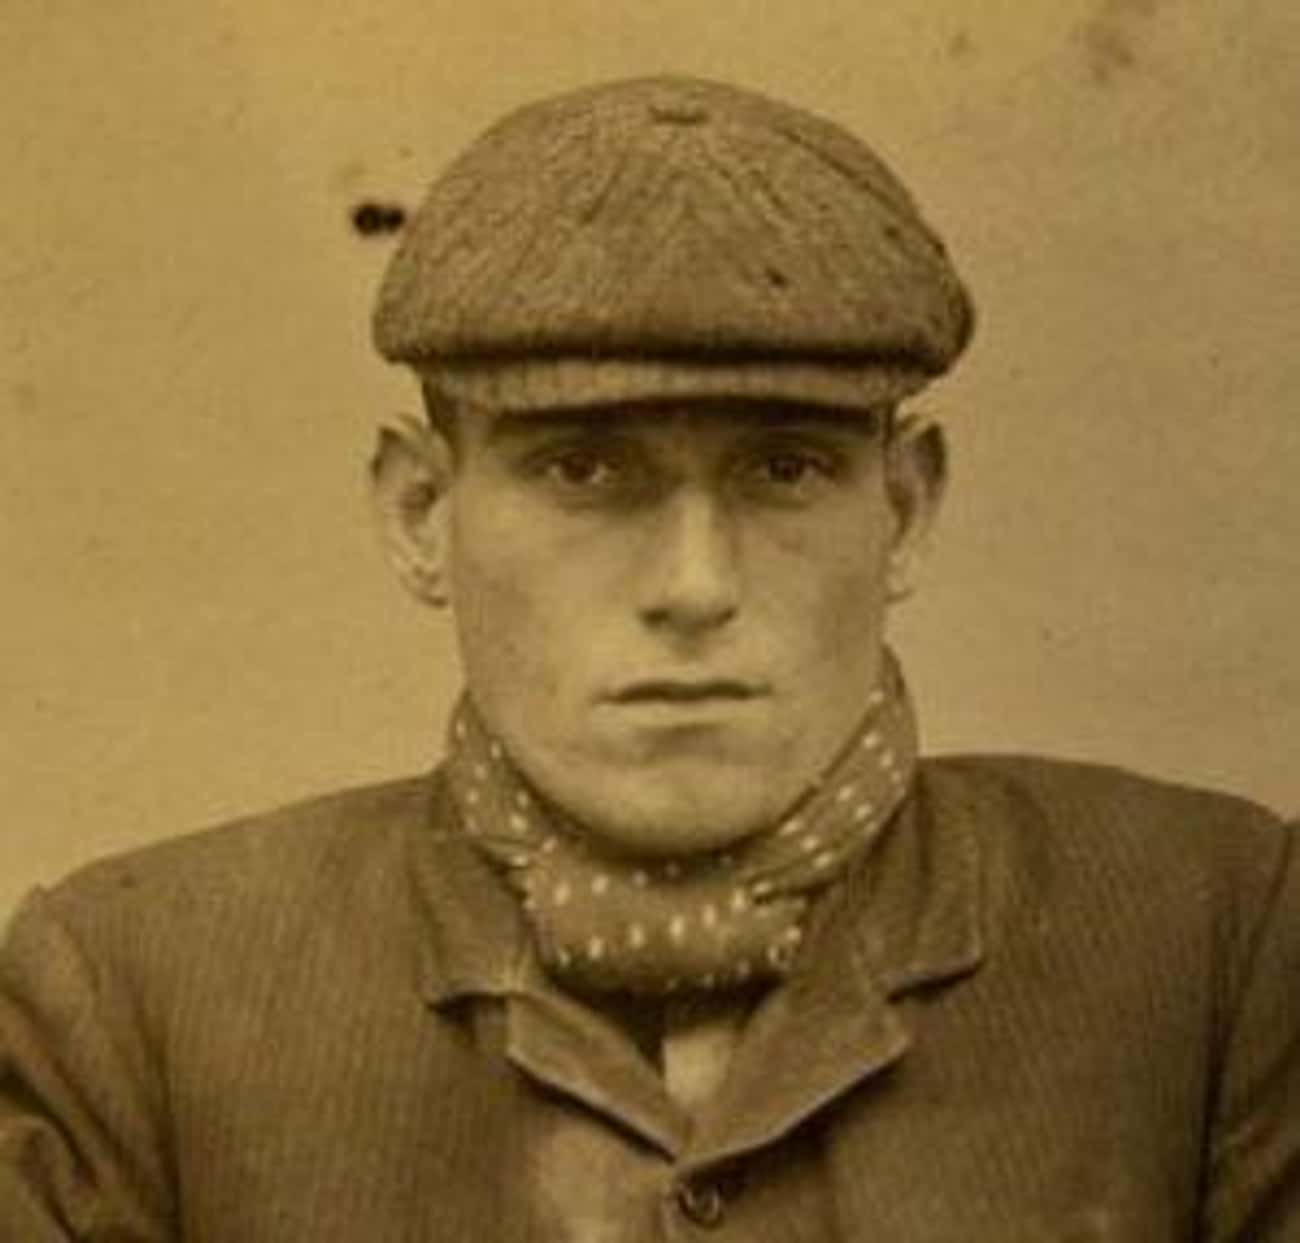 A Signature Cap Helped The Pea is listed (or ranked) 1 on the list The Fascinating True Story That Inspired BBC's 'Peaky Blinders'